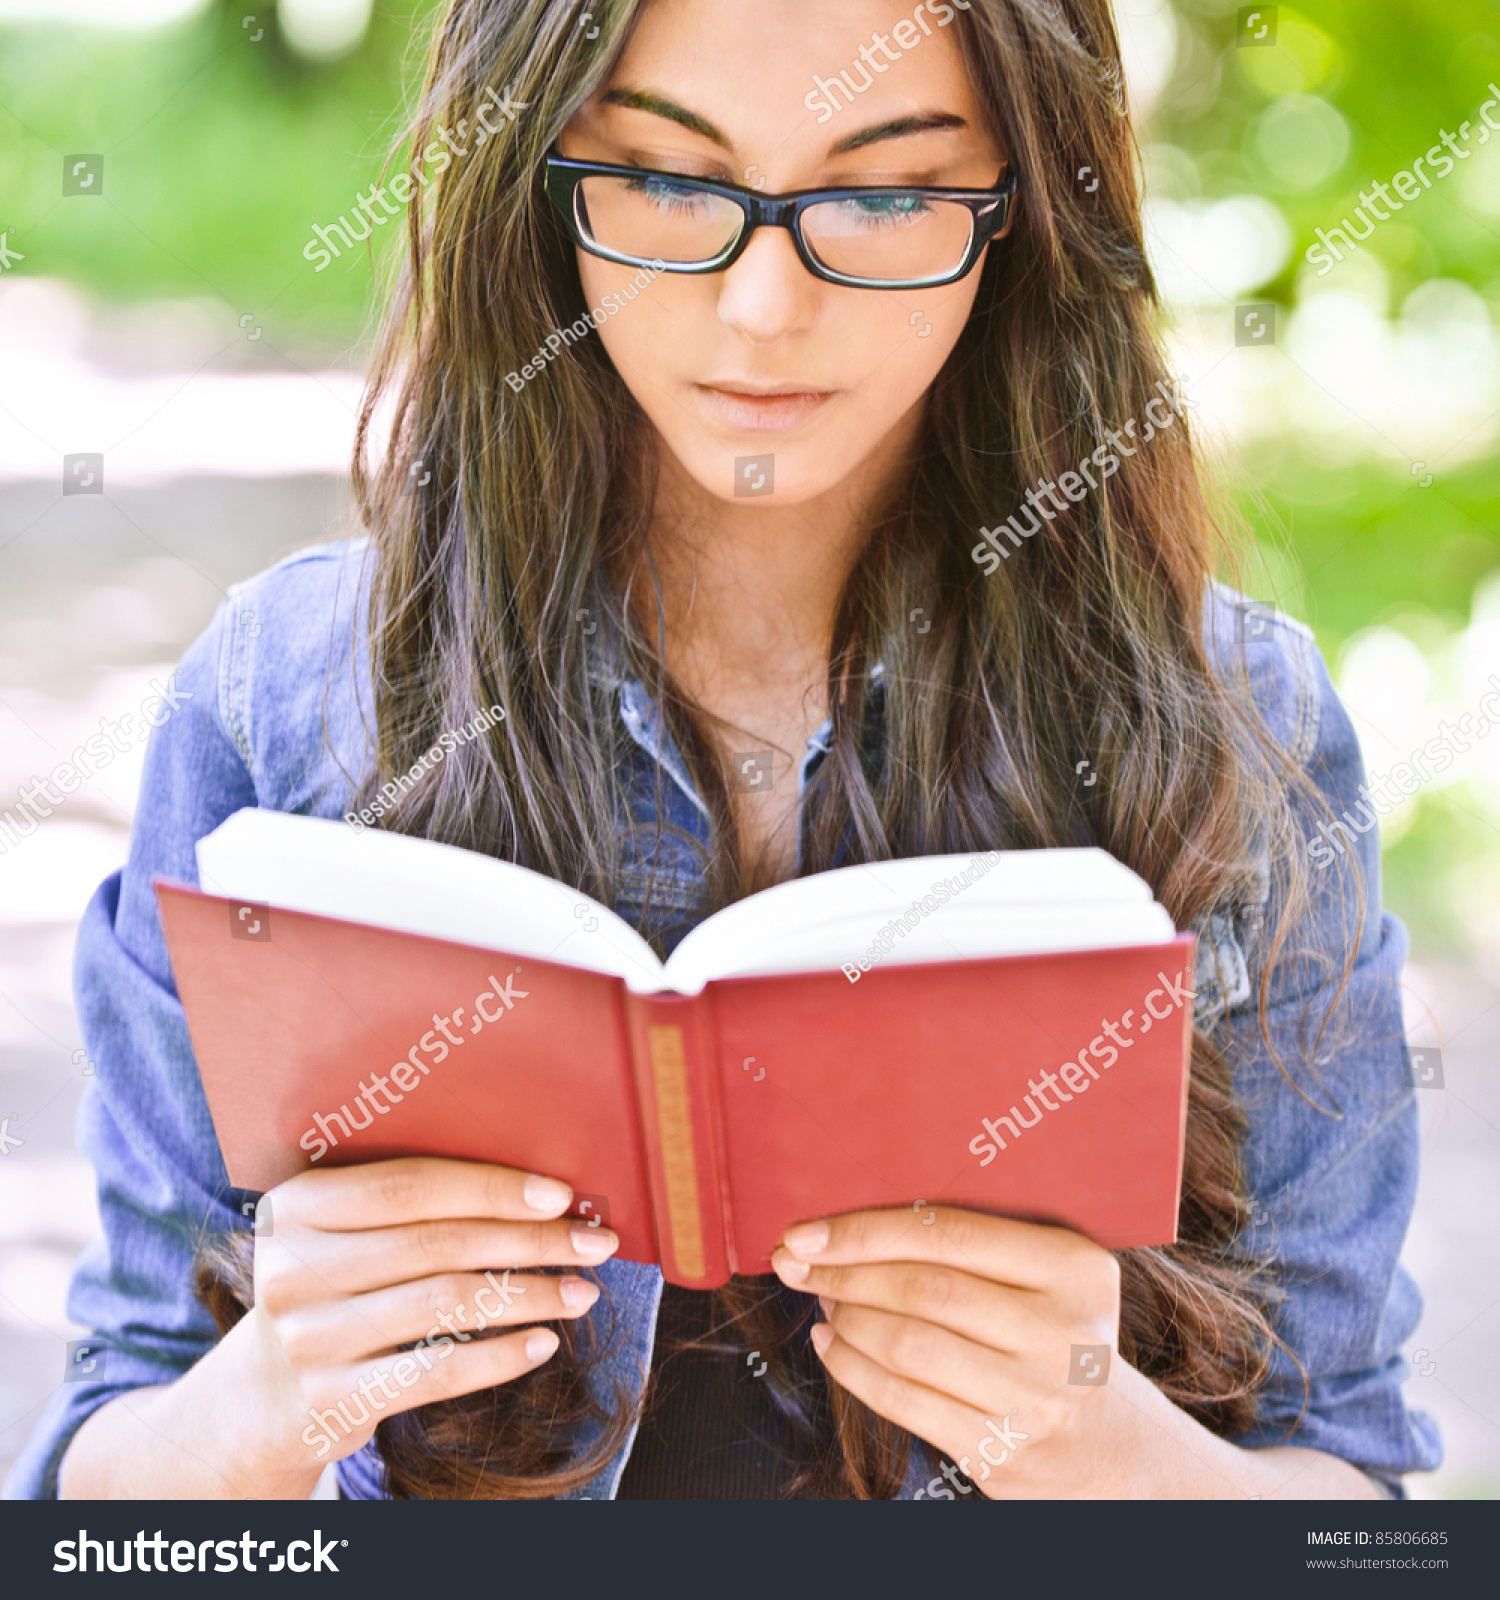 5c1e88a29eb646 Beautiful dark-haired serious girl in jeans jacket and glasses reads red  book against summer